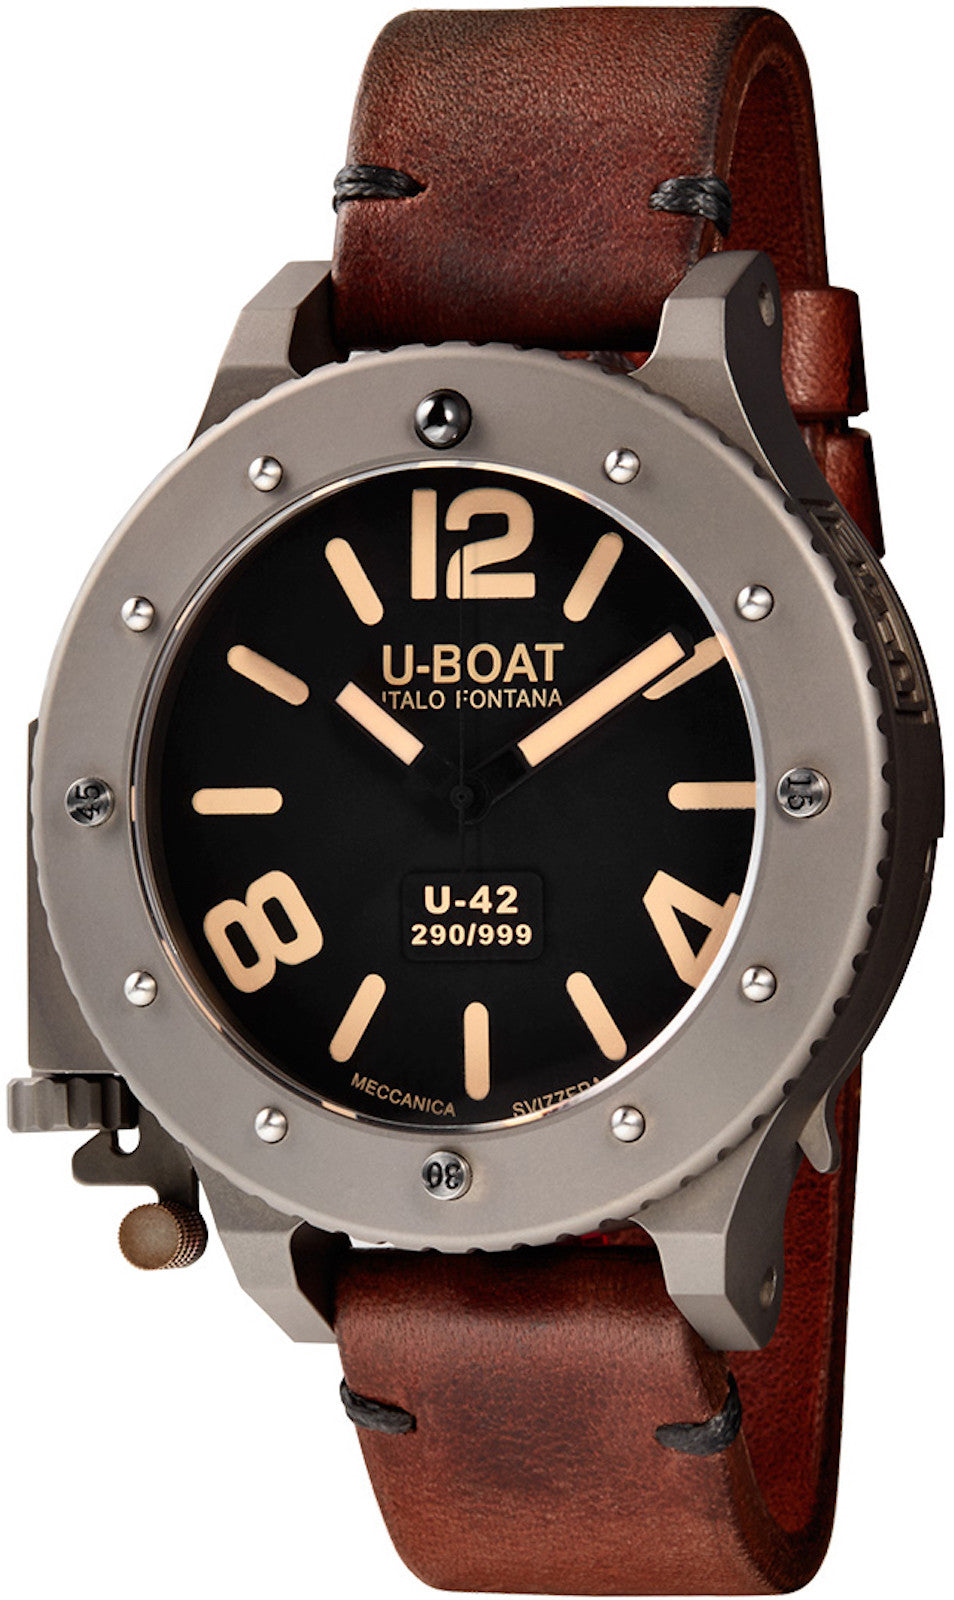 Limited Edition Birthday Collection: U-Boat Watch U-42 53mm Limited Edition 6157 Watch